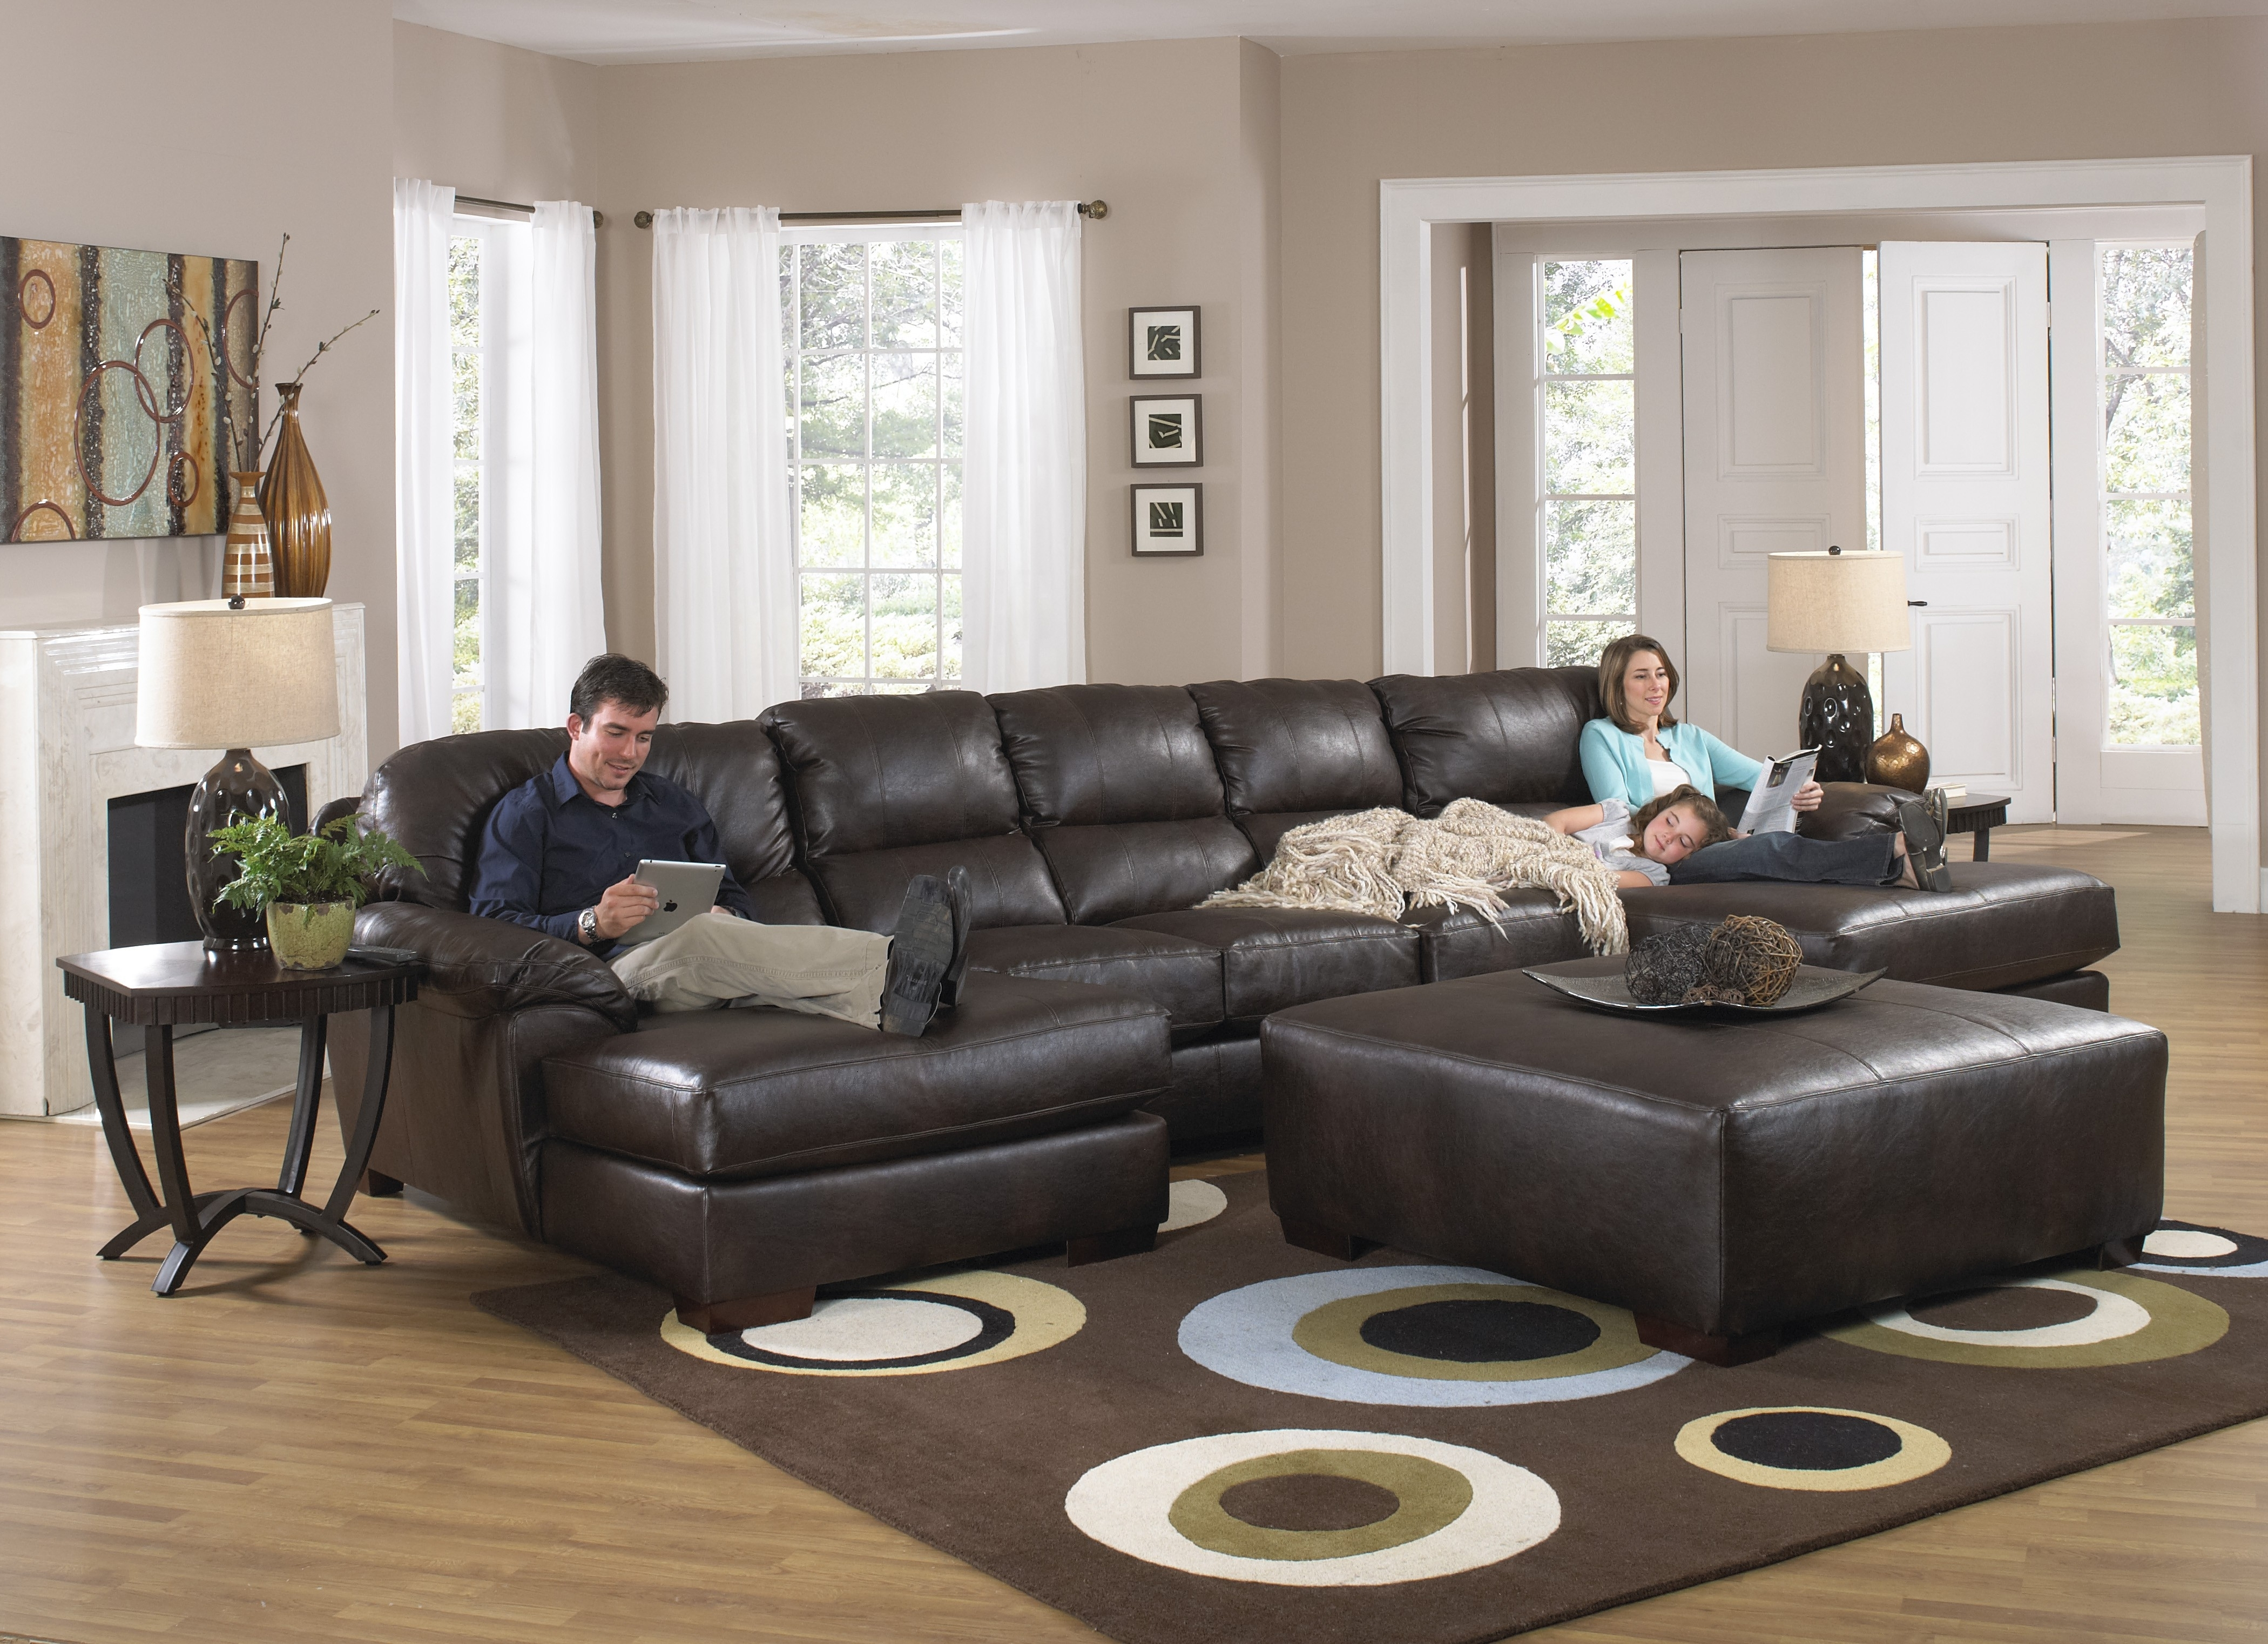 Black Modern Couch Sleeper Sofa Leather Sectionals With Recliners With Regard To Newest Couches With Chaise And Recliner (View 7 of 15)